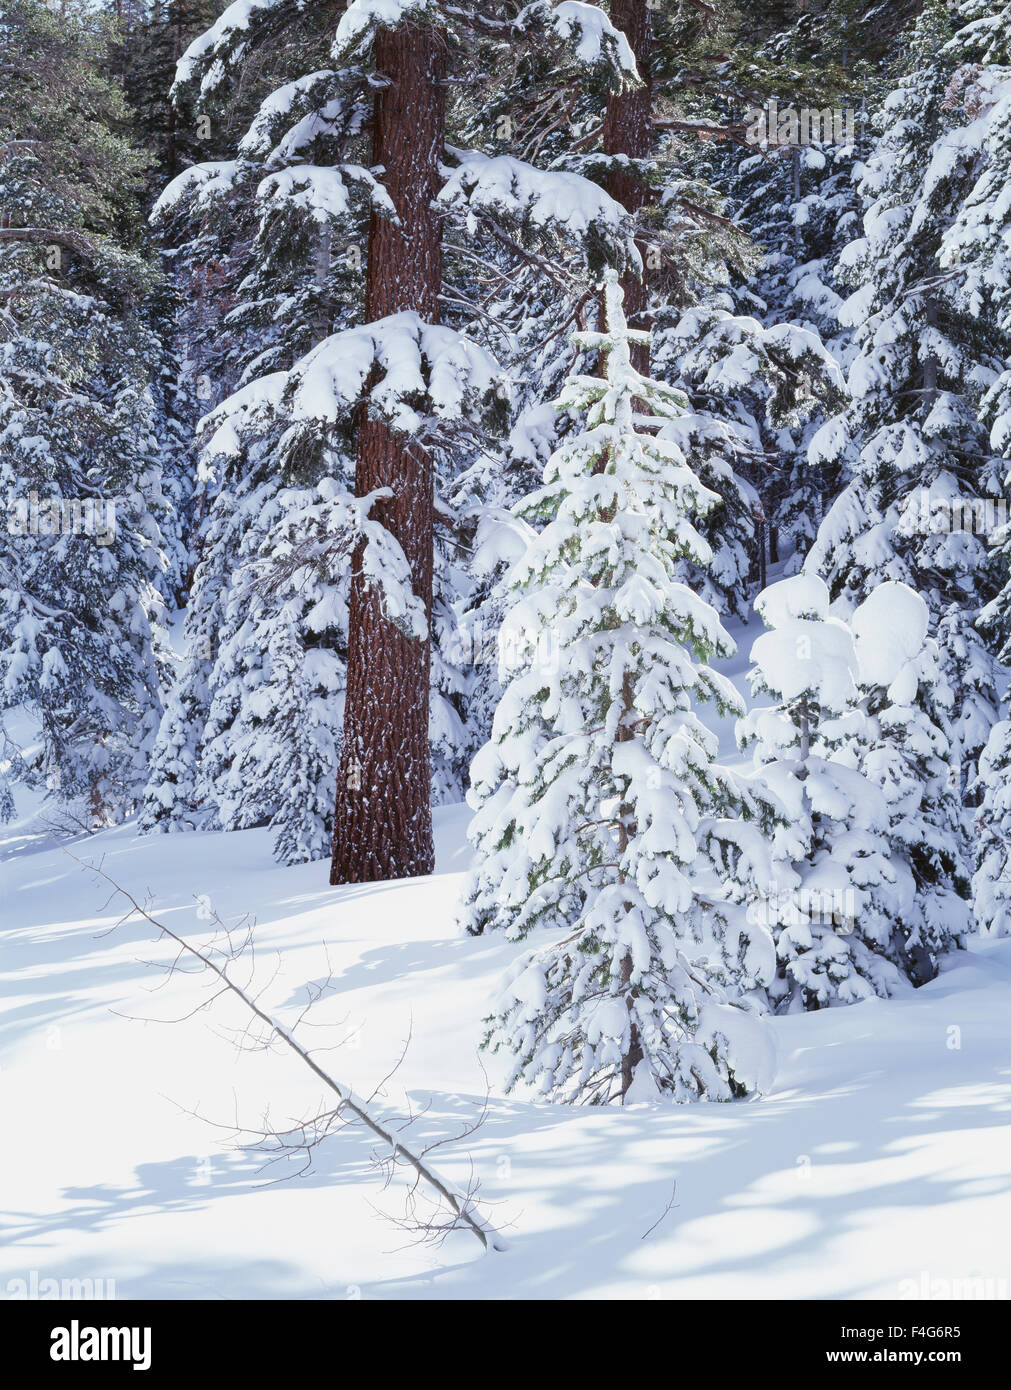 California, Sierra Nevada Mountains, Inyo National Forest, snow-covered Red Fir Trees (Abies magnifica). (Large - Stock Image